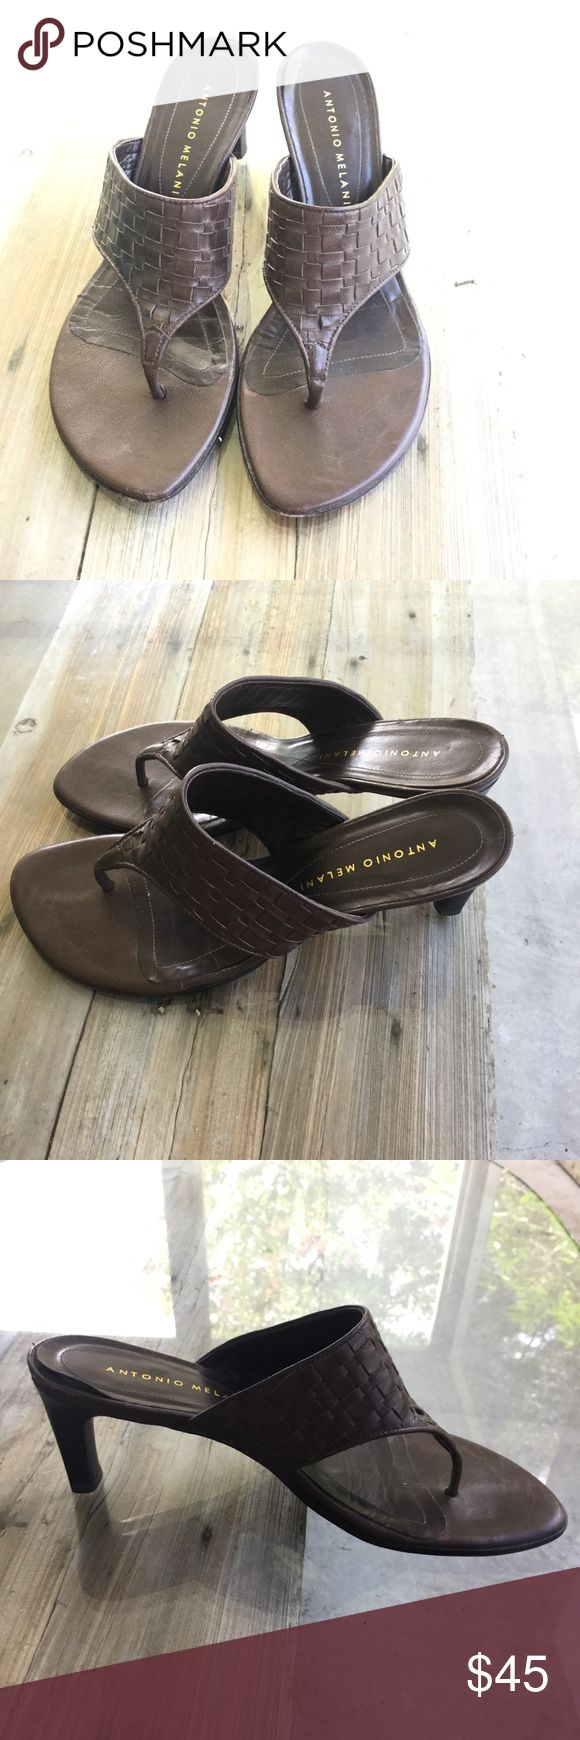 Antonio Melani heeled flip flops dark brown These Antonio Melani heeled flip flops are so cute and in extremely good condition. The sole of the left shoes is slightly lifted up at the heel, but I think I can fix that. They are so cute, and are in need of a good home. Size 6 & 1/2 ANTONIO MELANI Shoes Sandals